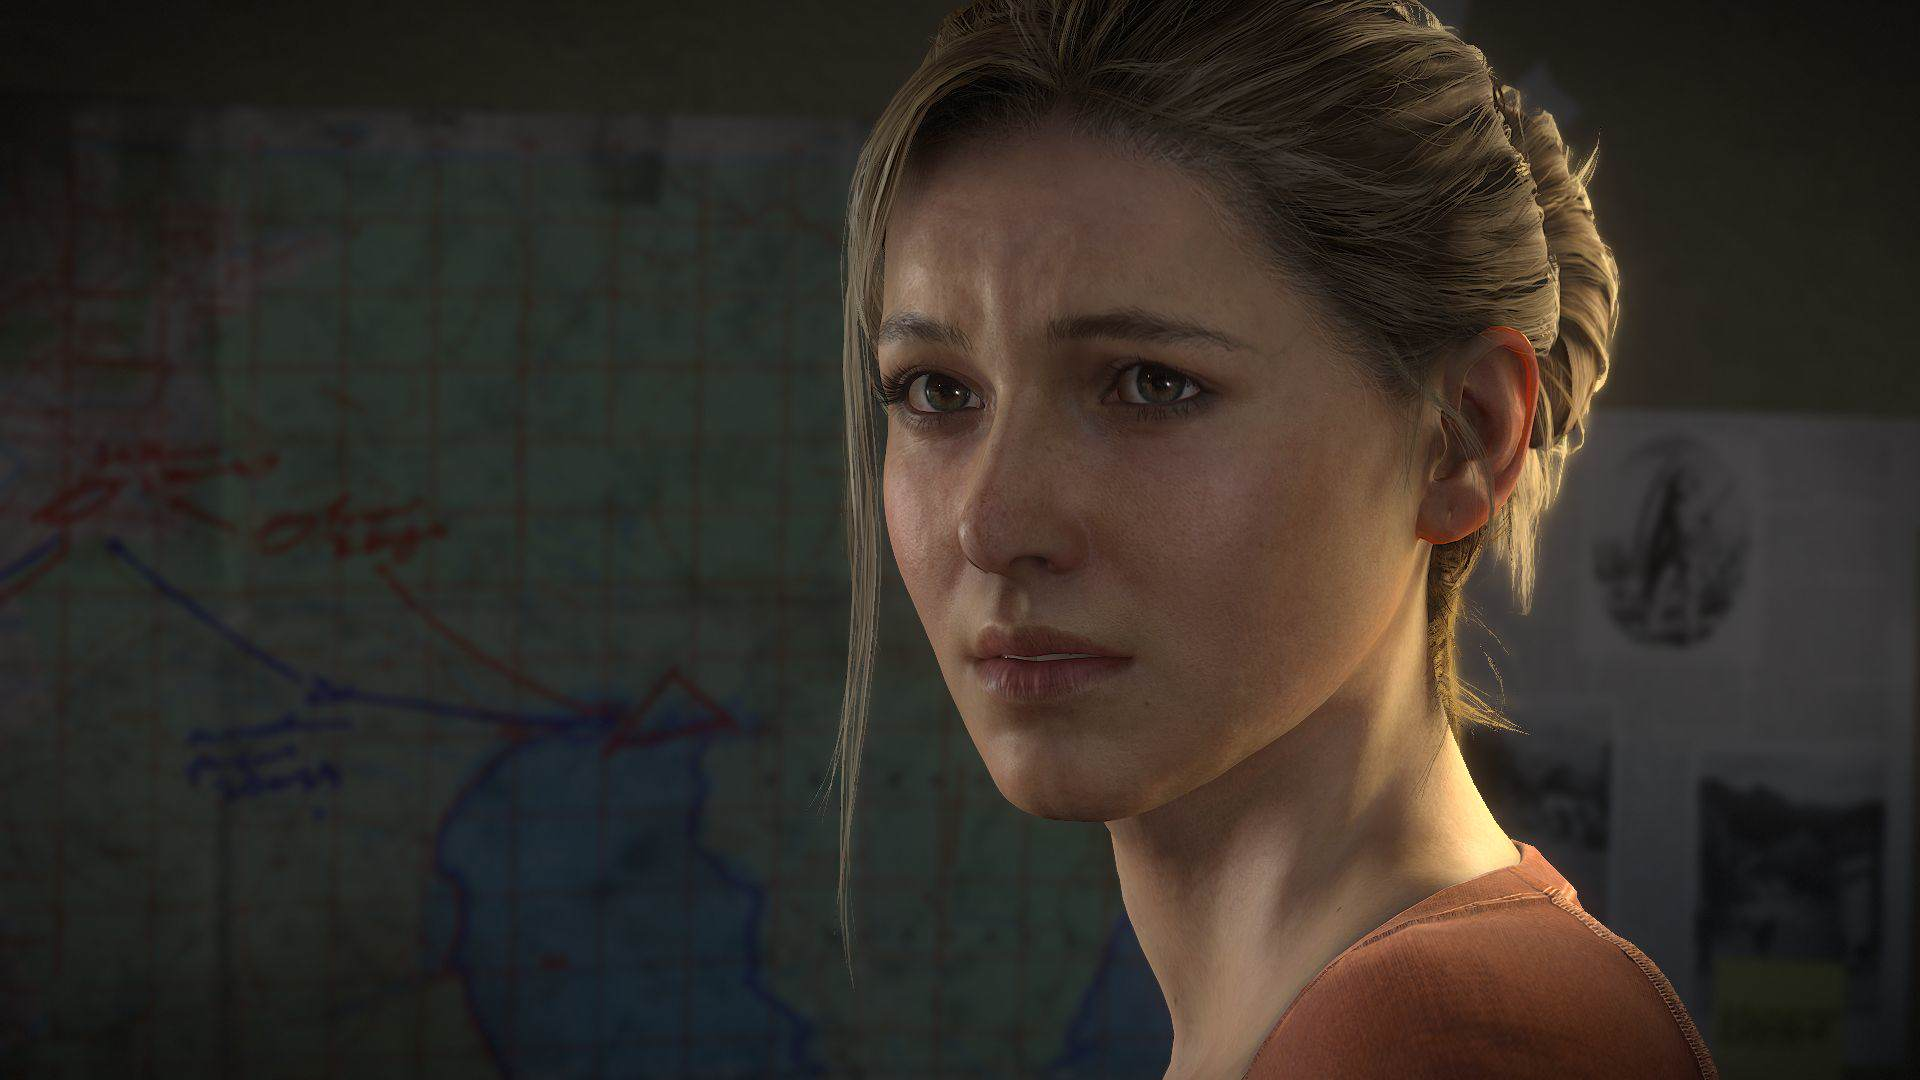 Uncharted 4 Has Been Delayed Once Again Uncharted 4 elena 1434429092